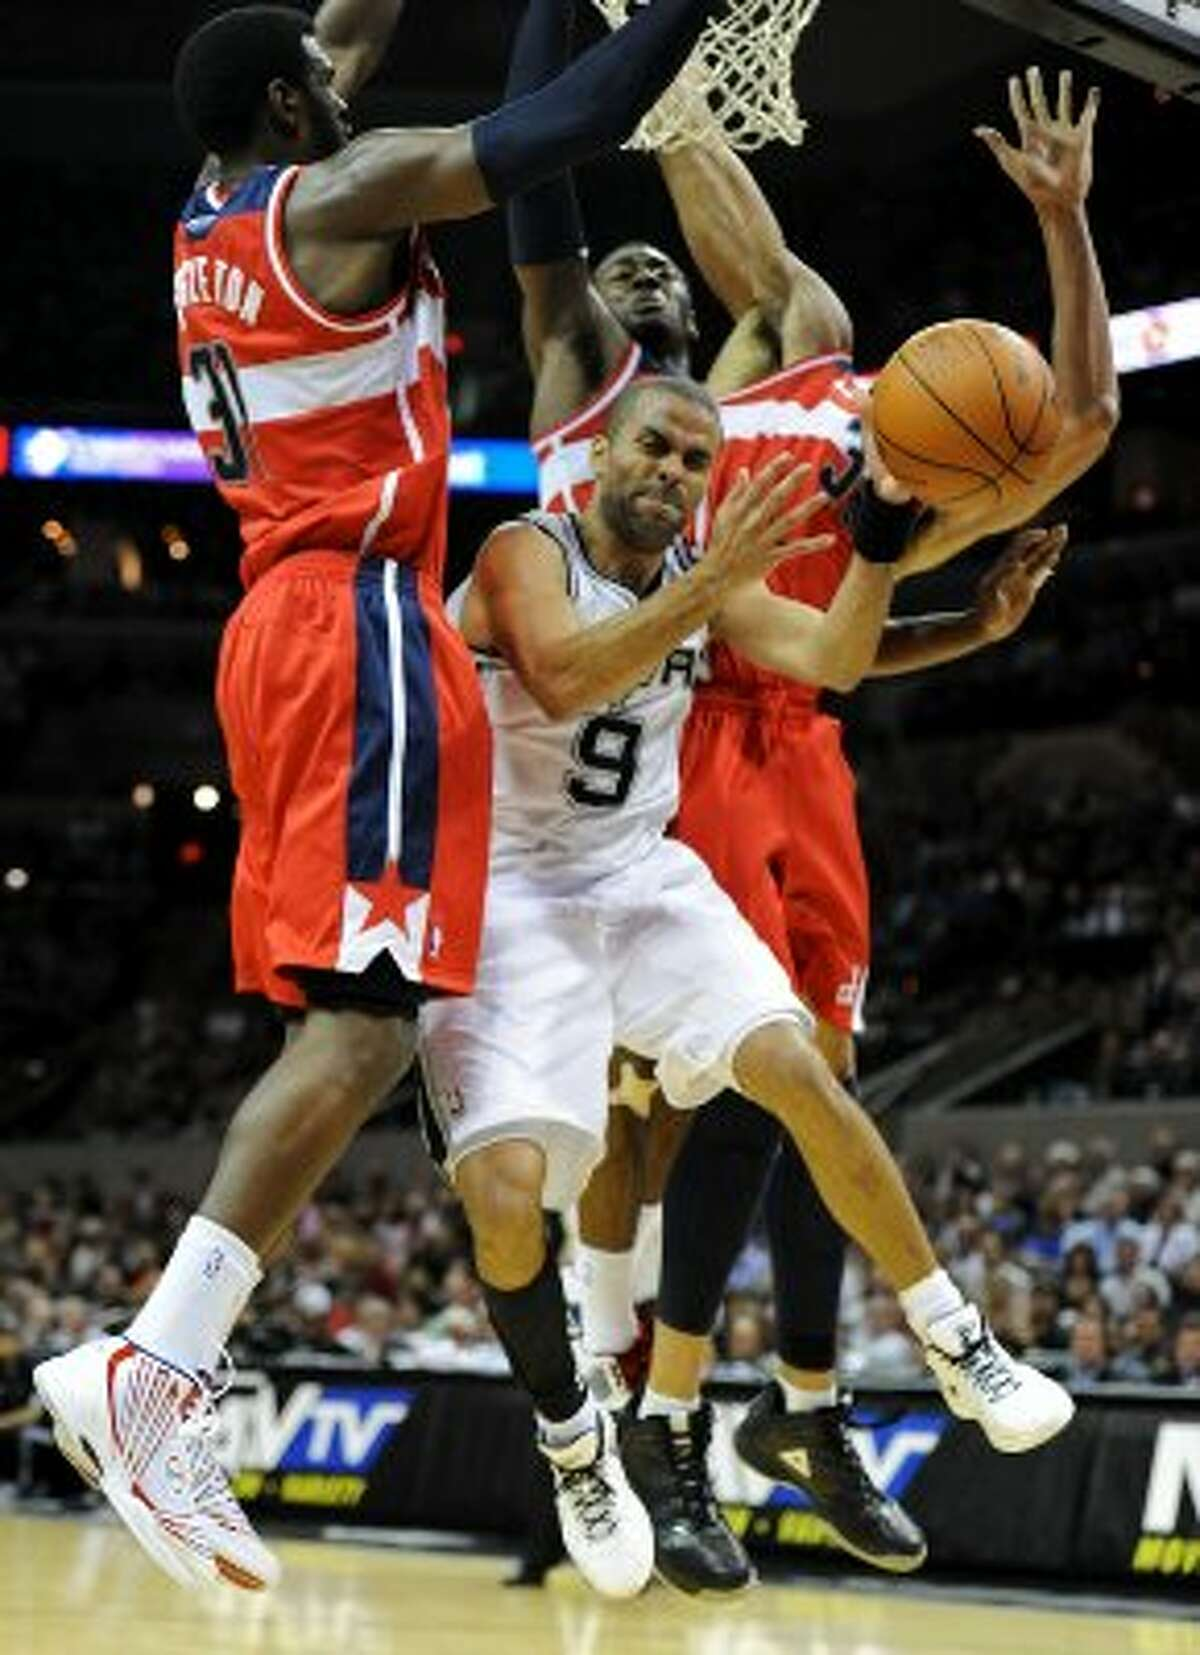 San Antonio Spurs point guard Tony Parker (9) loses control of the ball as he is surrounded by three Washington Wizards under the basket during a NBA basketball game between the Washington Wizards and the San Antonio Spurs at the AT&T Center in San Antonio, Texas on March 12, 2012. John Albright / Special to the Express-News. (San Antonio Express-News)